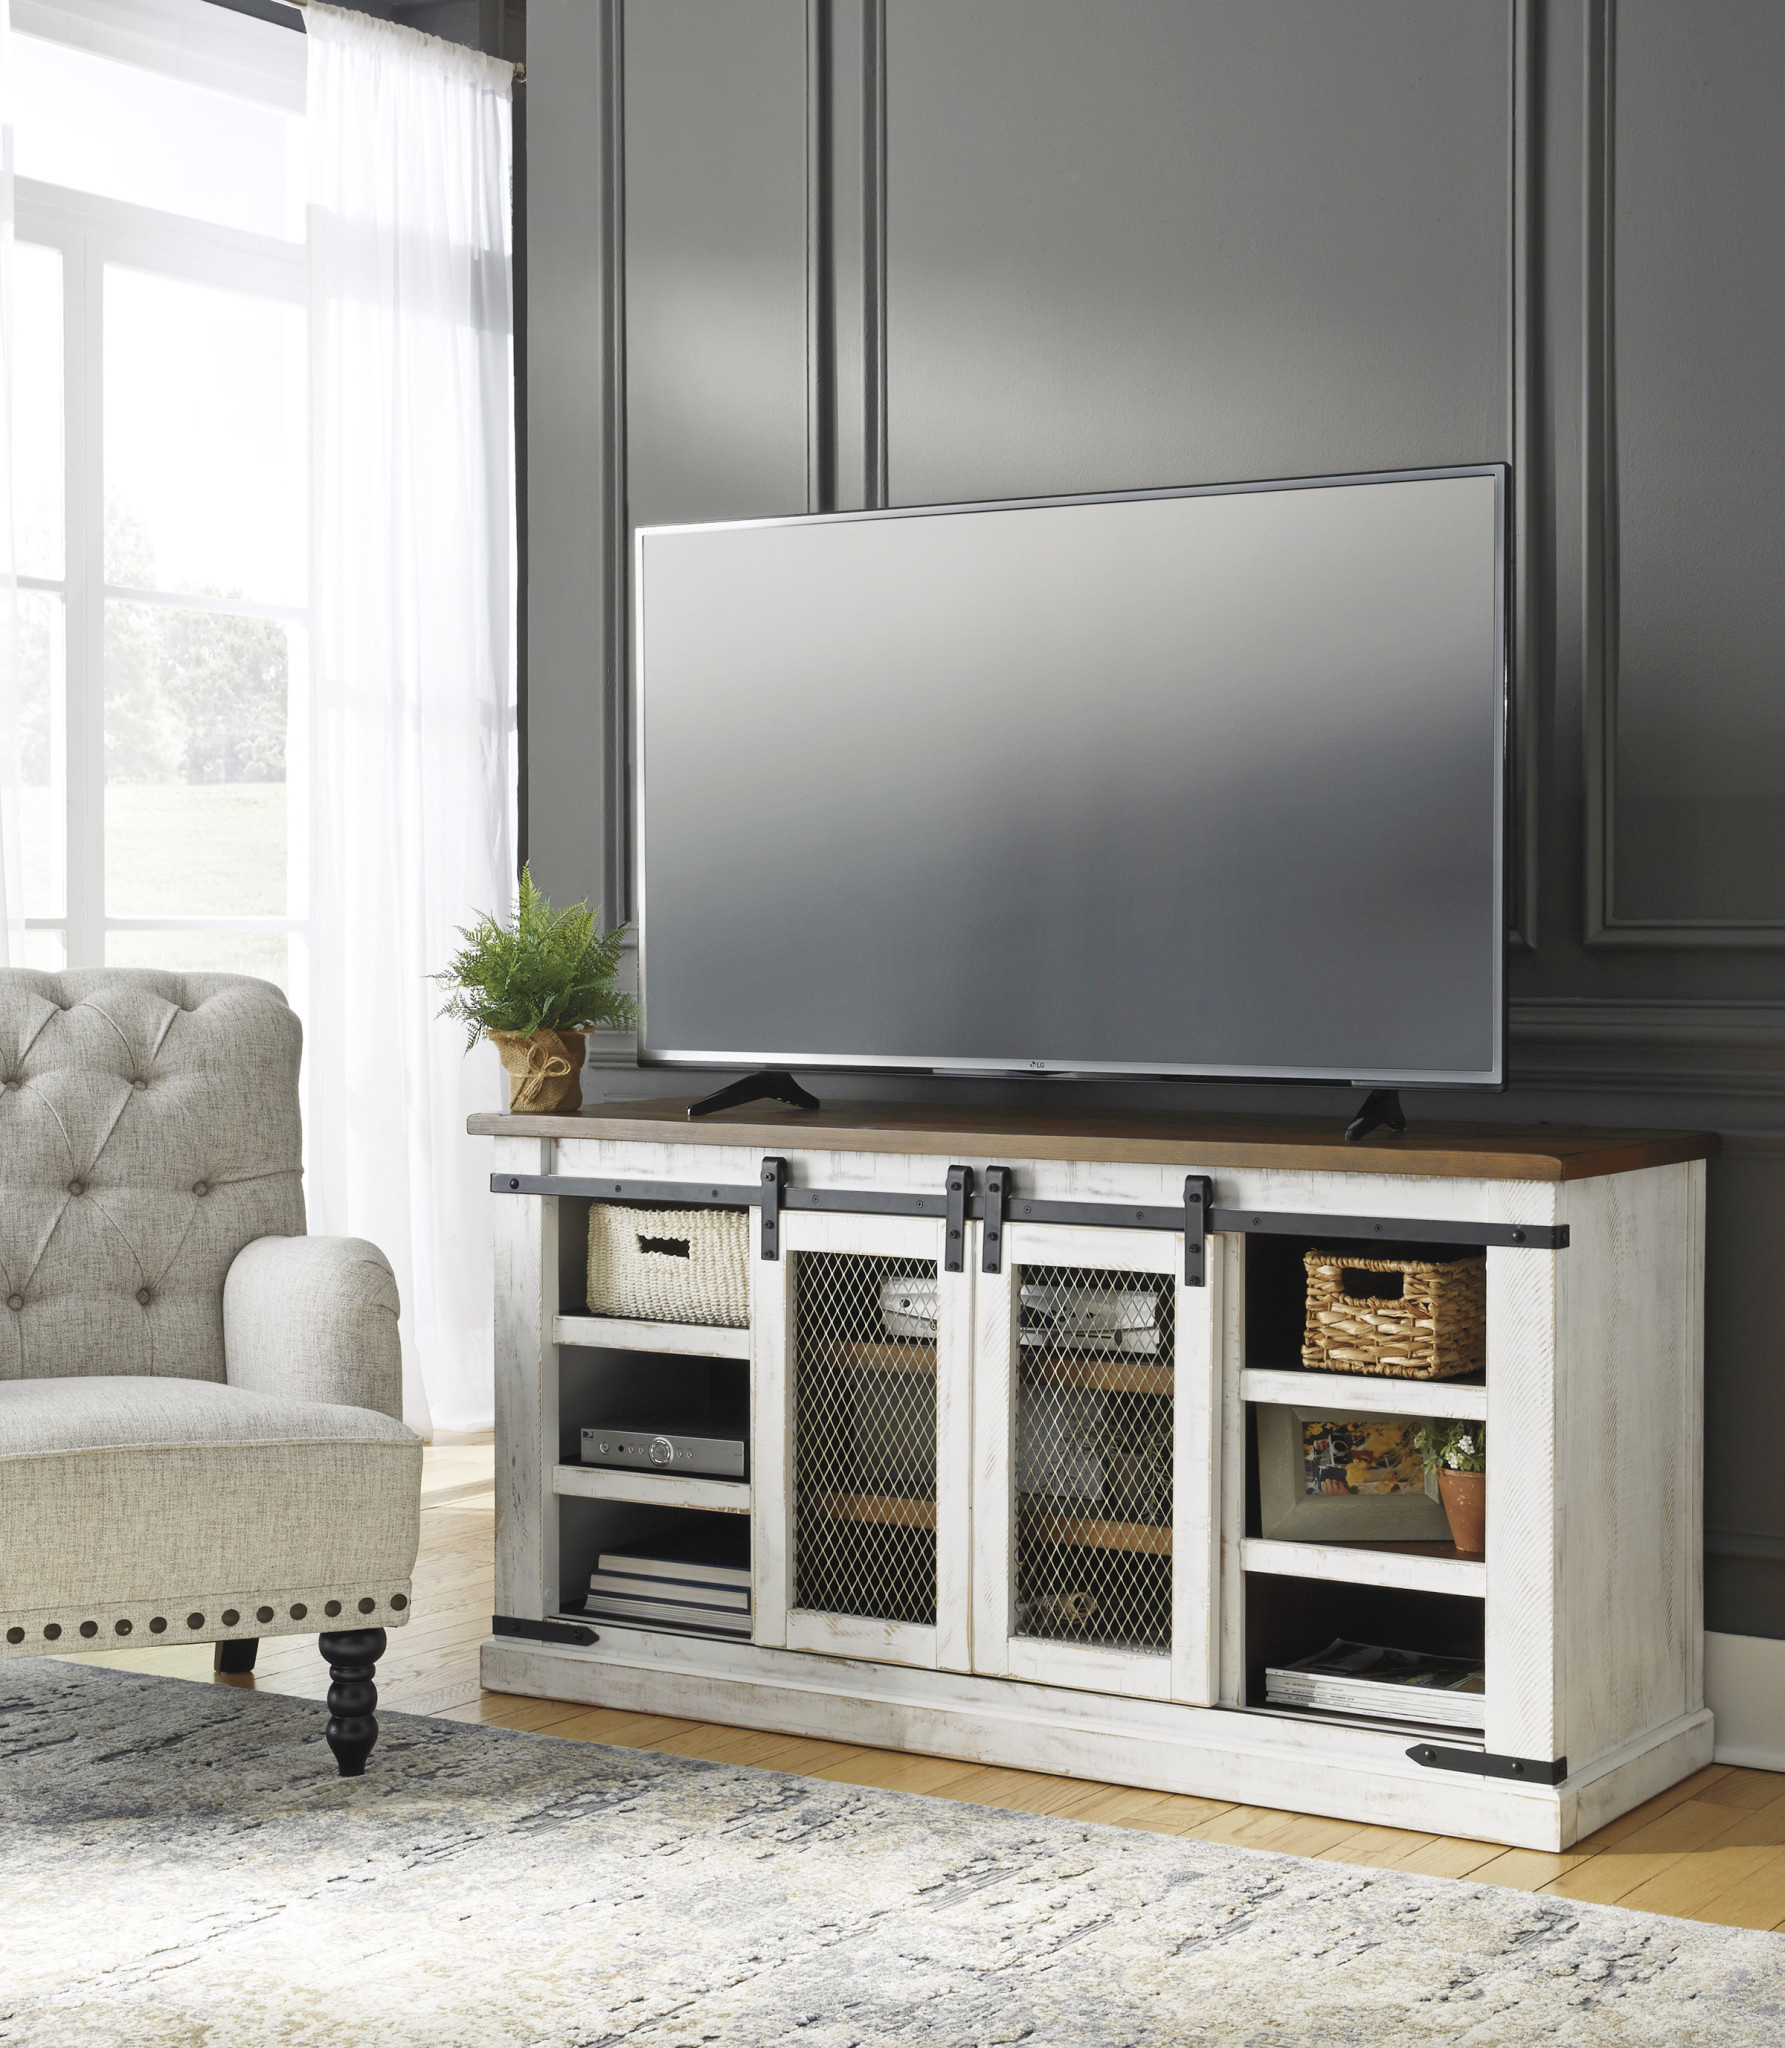 Signature Design Large TV Stand, Wystfield, White/Brown, W549-48